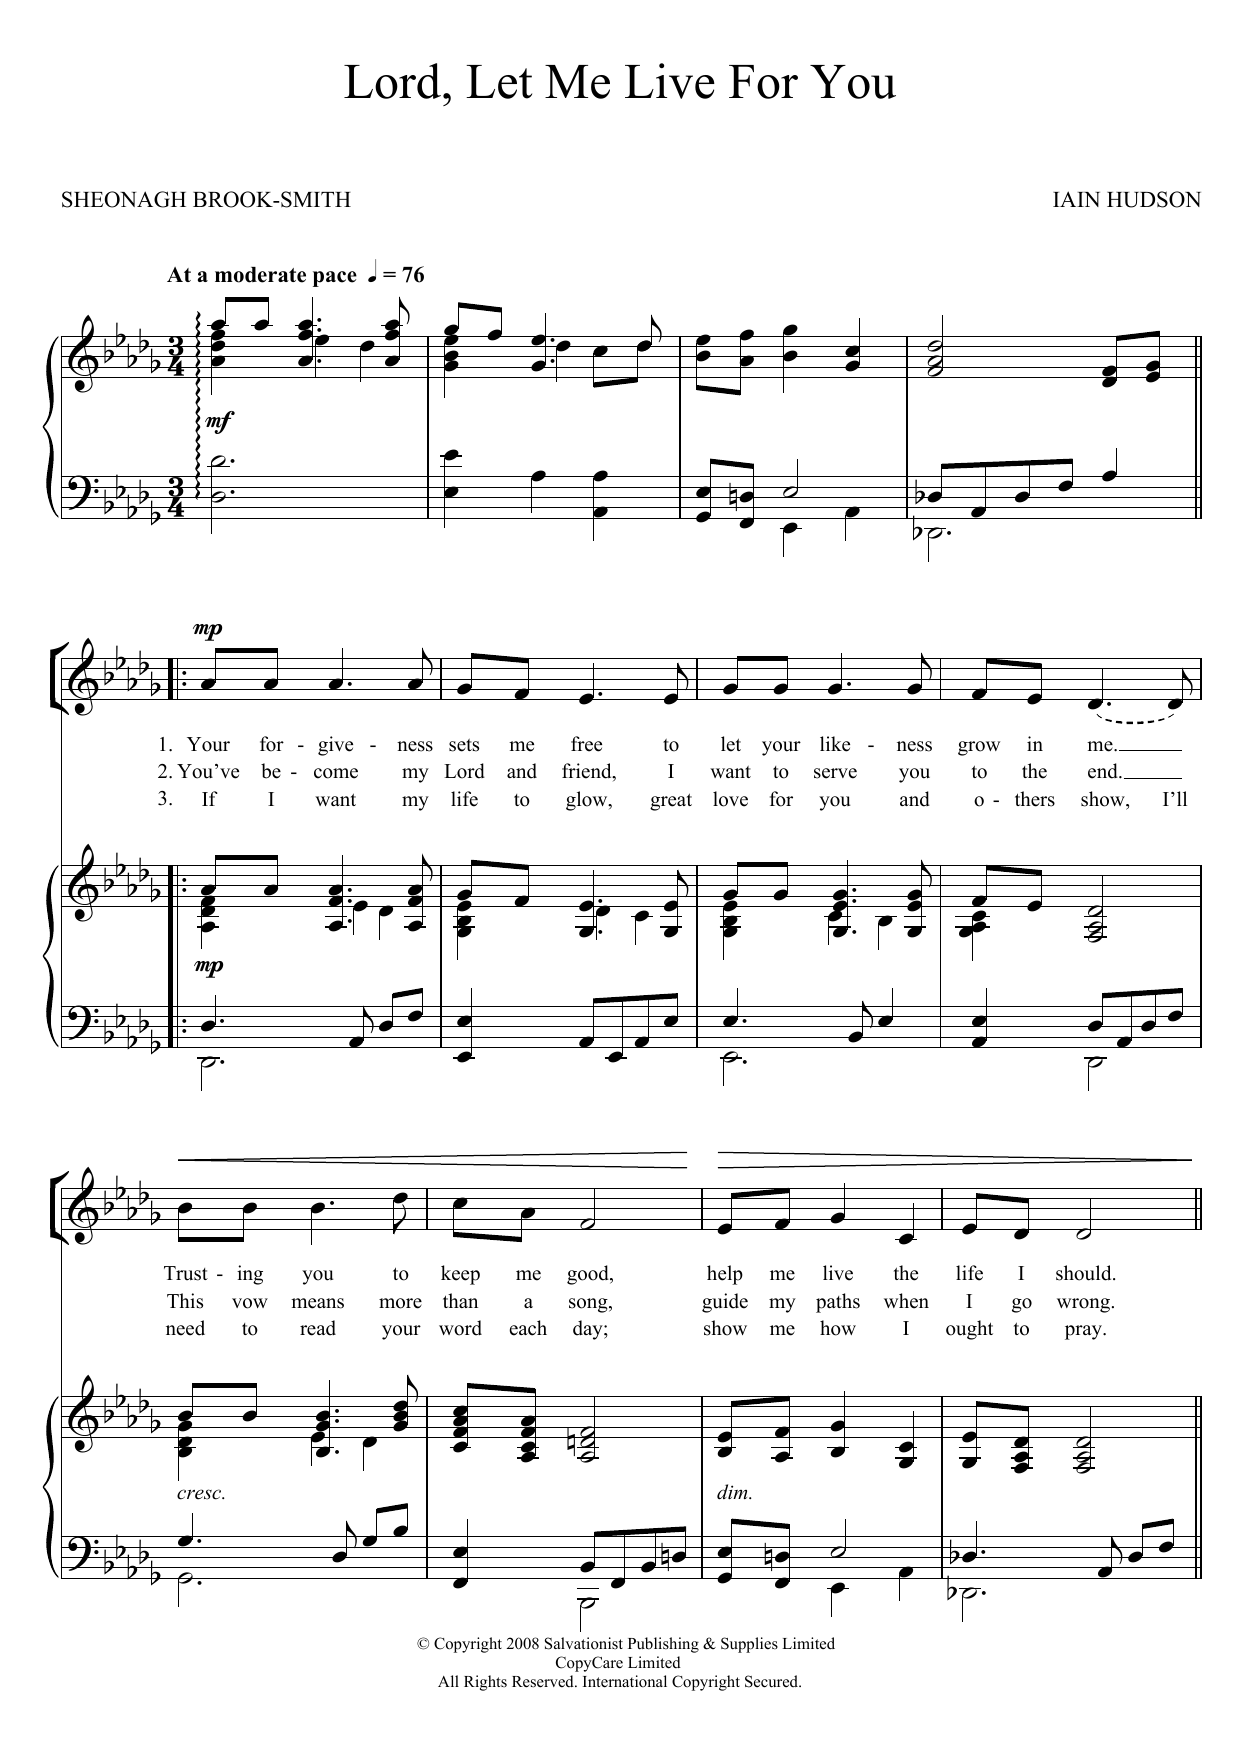 Lord, Let Me Live For You Sheet Music